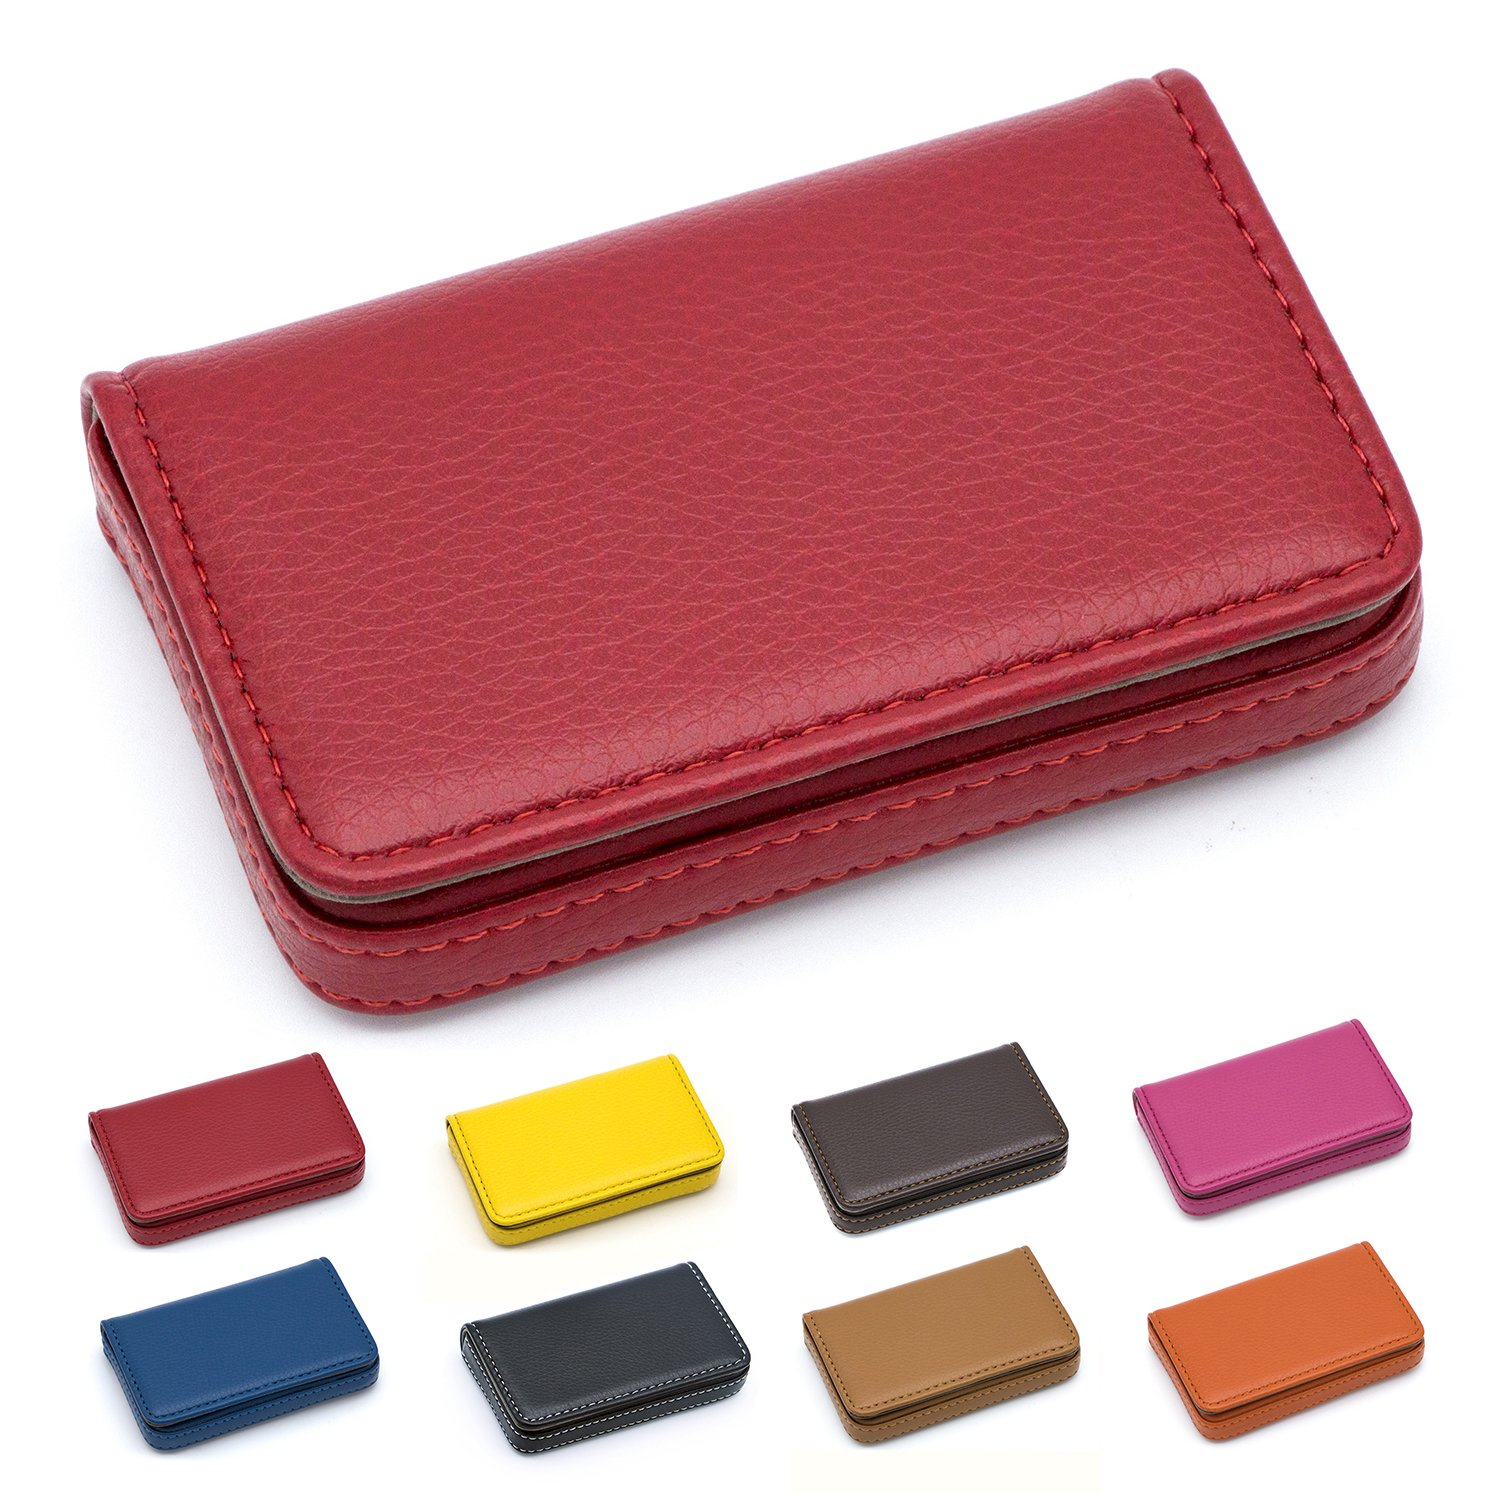 Padike Business Name Card Holder Luxury PU Leather,Business Name Card Holder Wallet Credit card ID Case/Holder For Men & Women - Keep Your Business Cards Clean